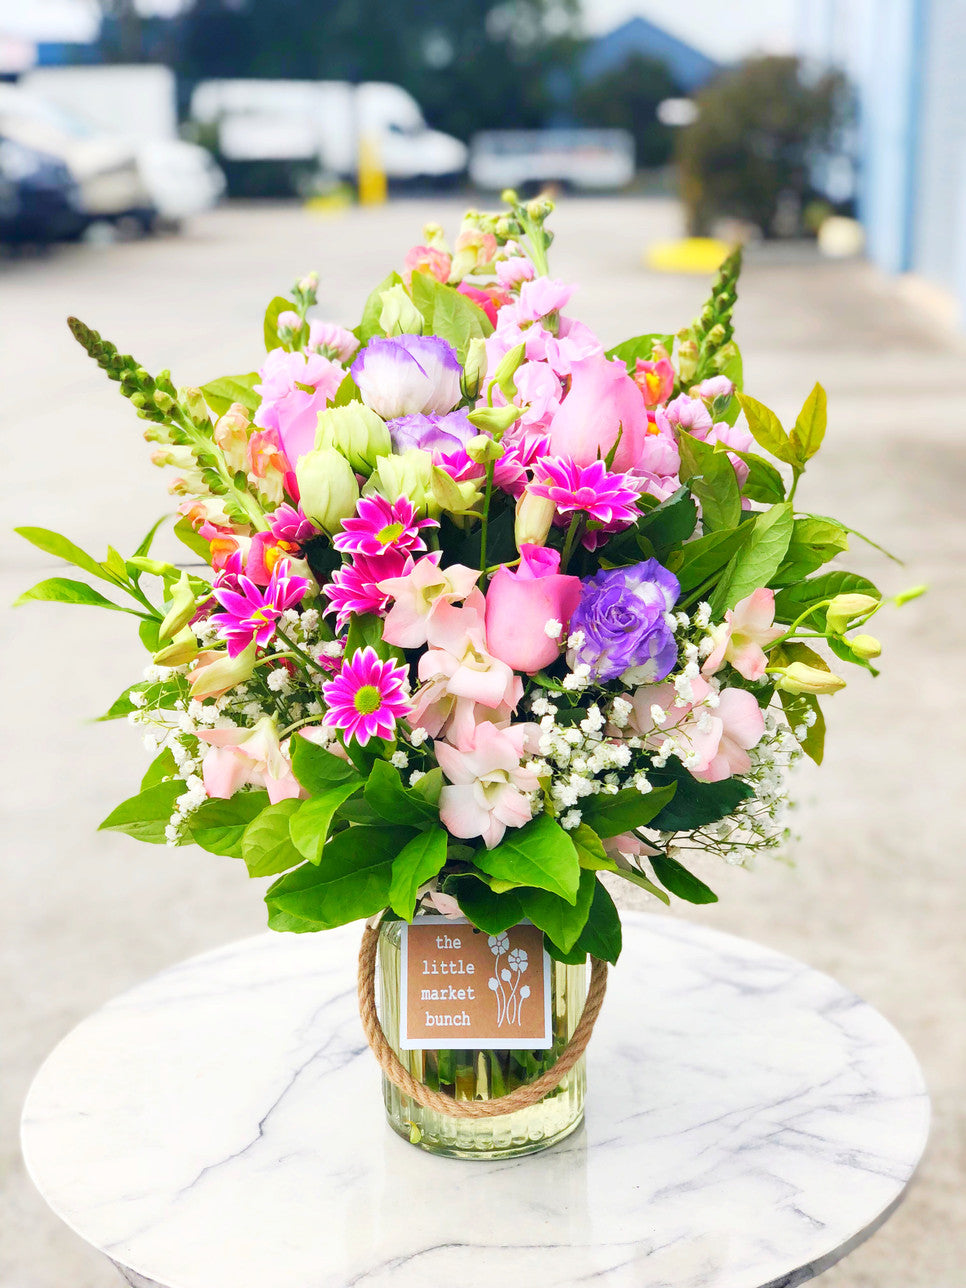 Online fresh flowers delivery melbourne the little market bunch flowers for today izmirmasajfo